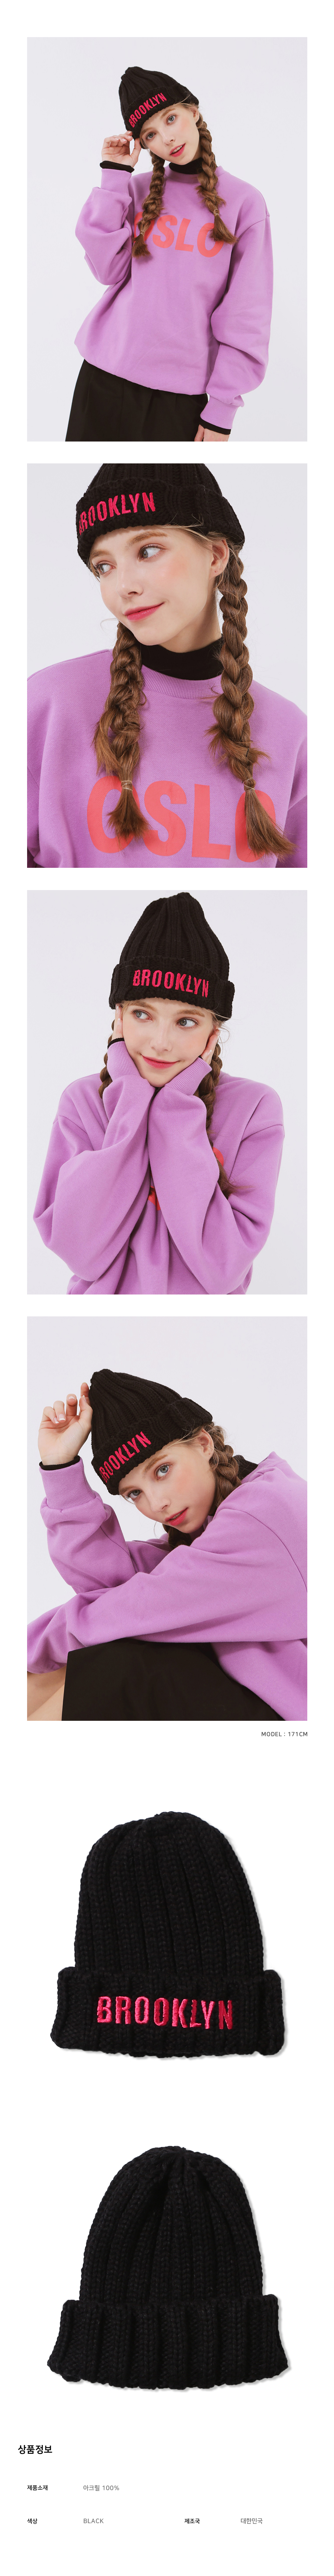 시에로(SIERO) BROOKLYN Knit Beanie (SF4GCF564BK)